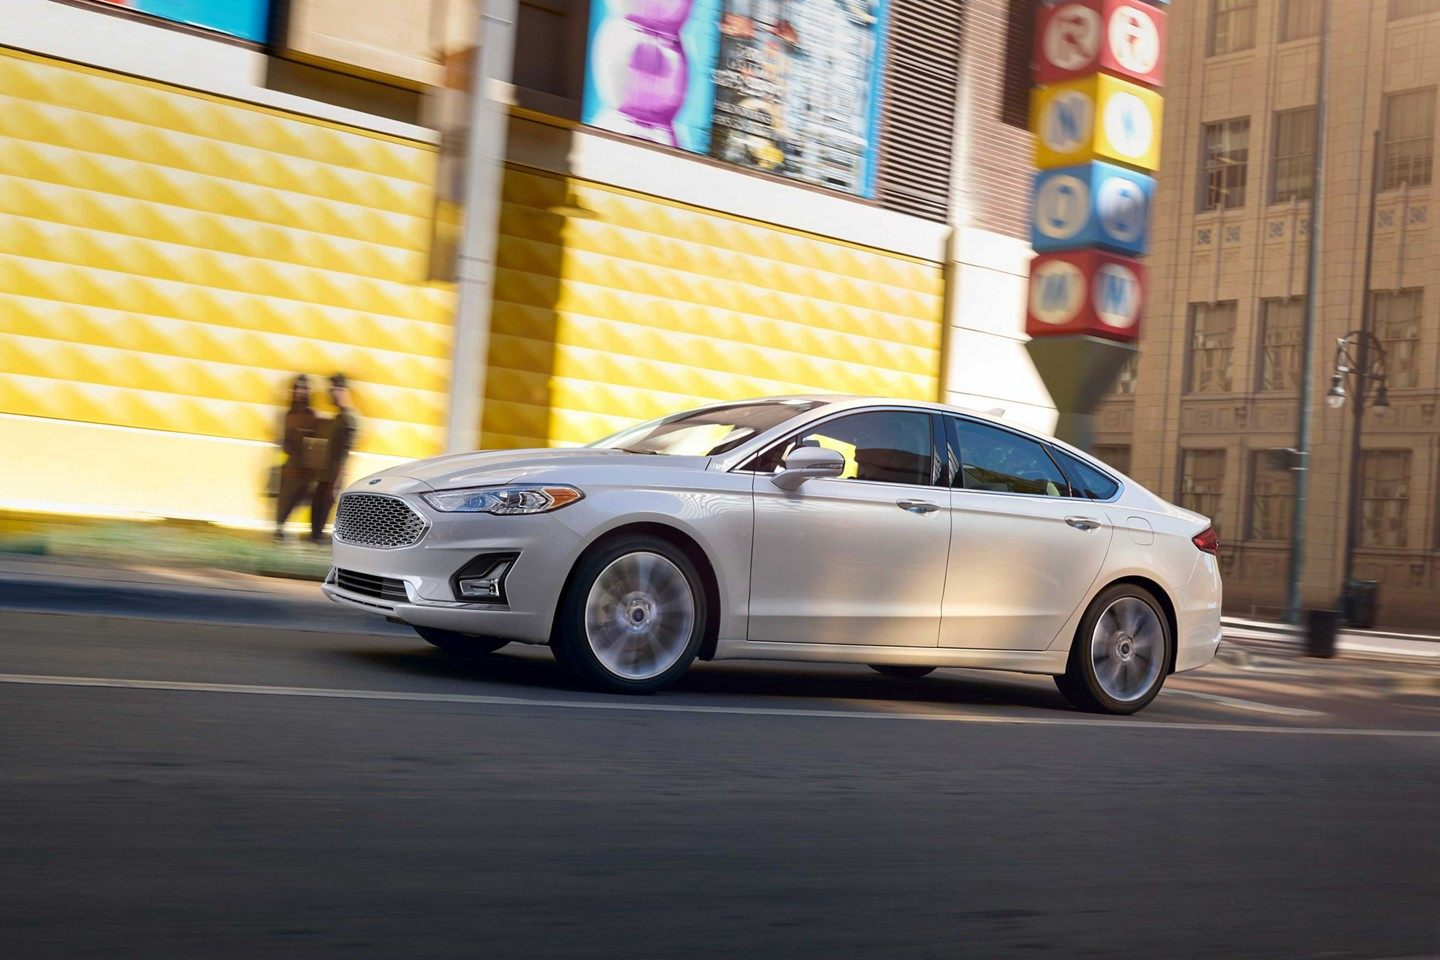 2019 Ford Fusion Driving White Exterior.jpeg